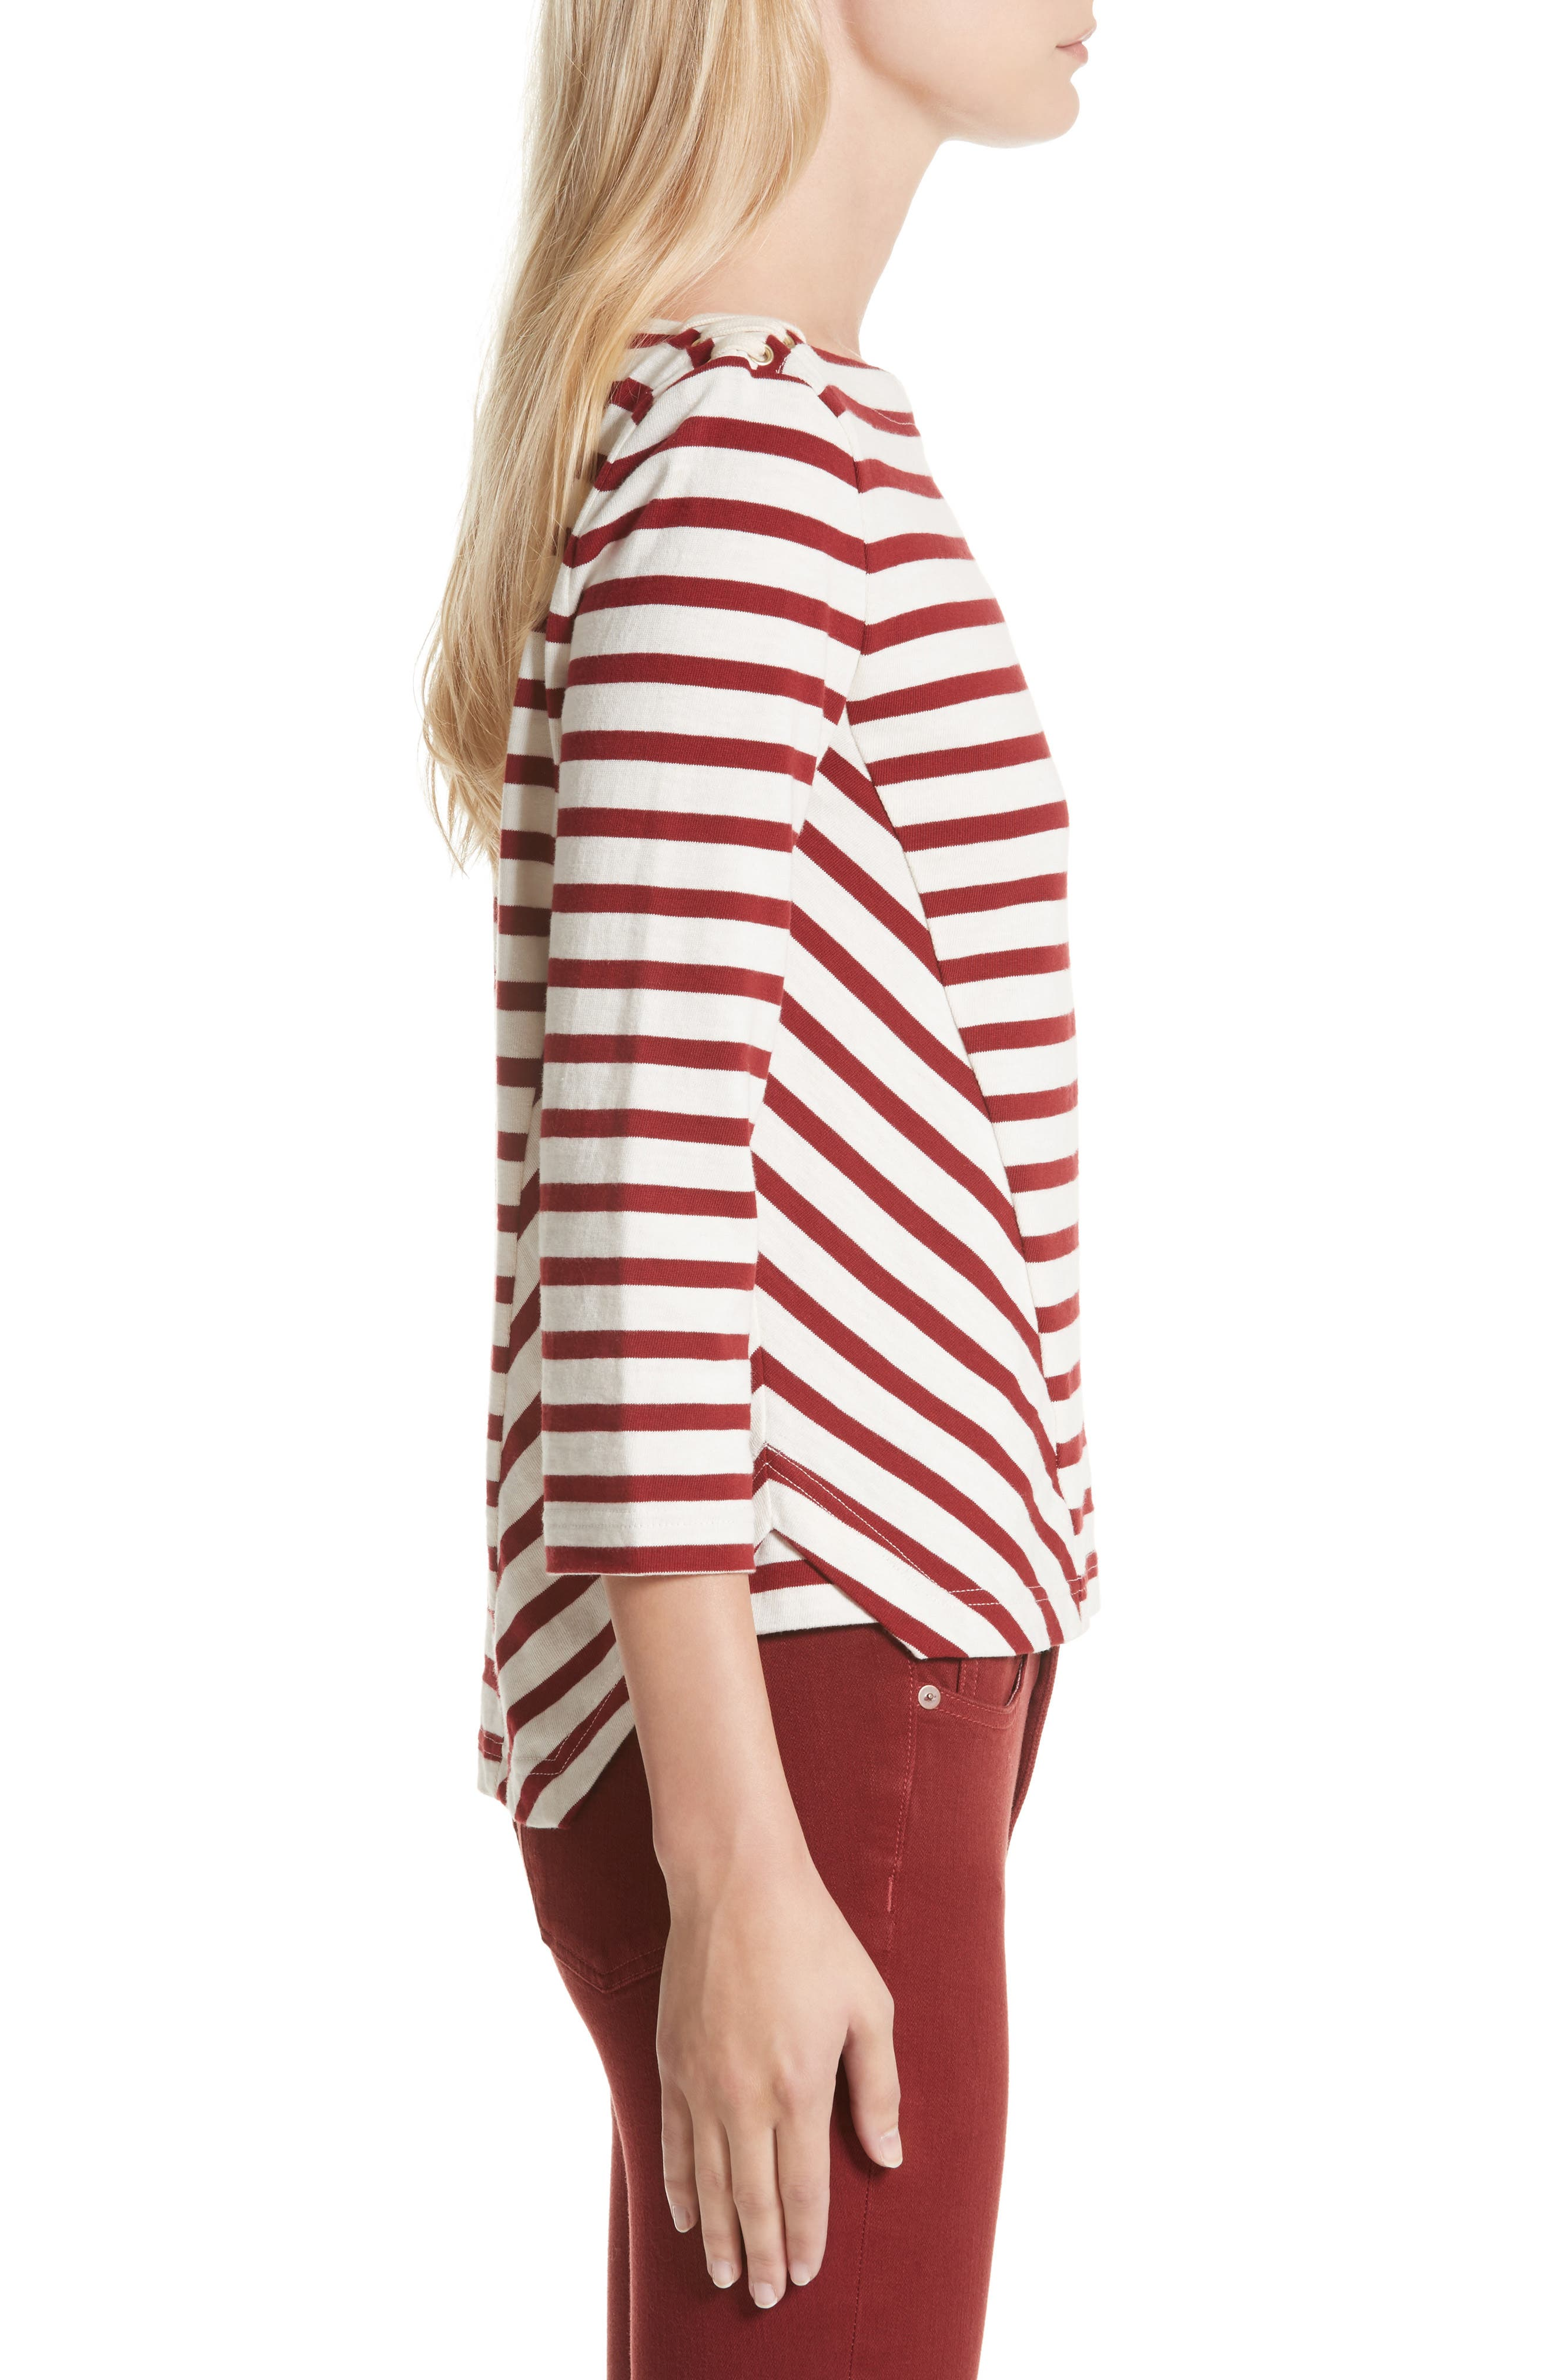 Lincoln Mariner Top,                             Alternate thumbnail 3, color,                             Ecru/ Red